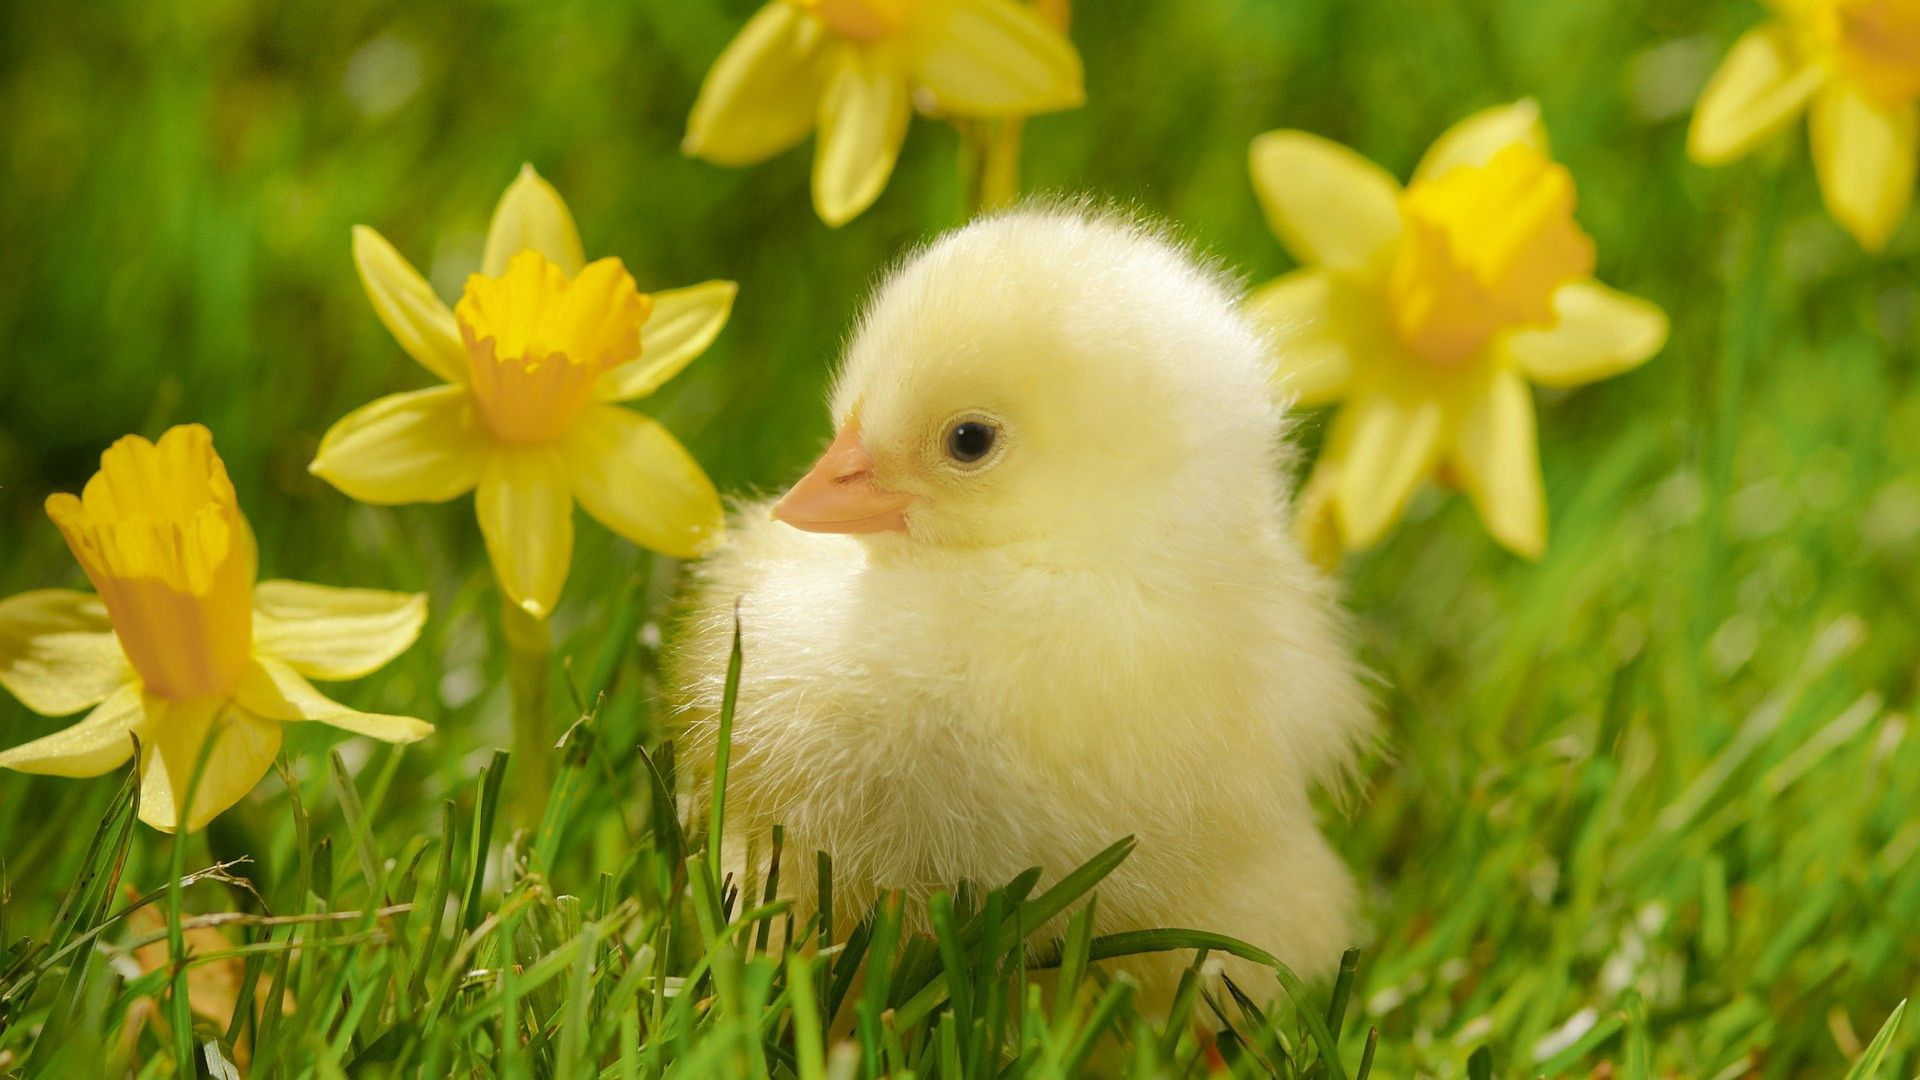 69966 download wallpaper Animals, Grass, Bird, To Lie Down, Lie, Chick, Chicken screensavers and pictures for free